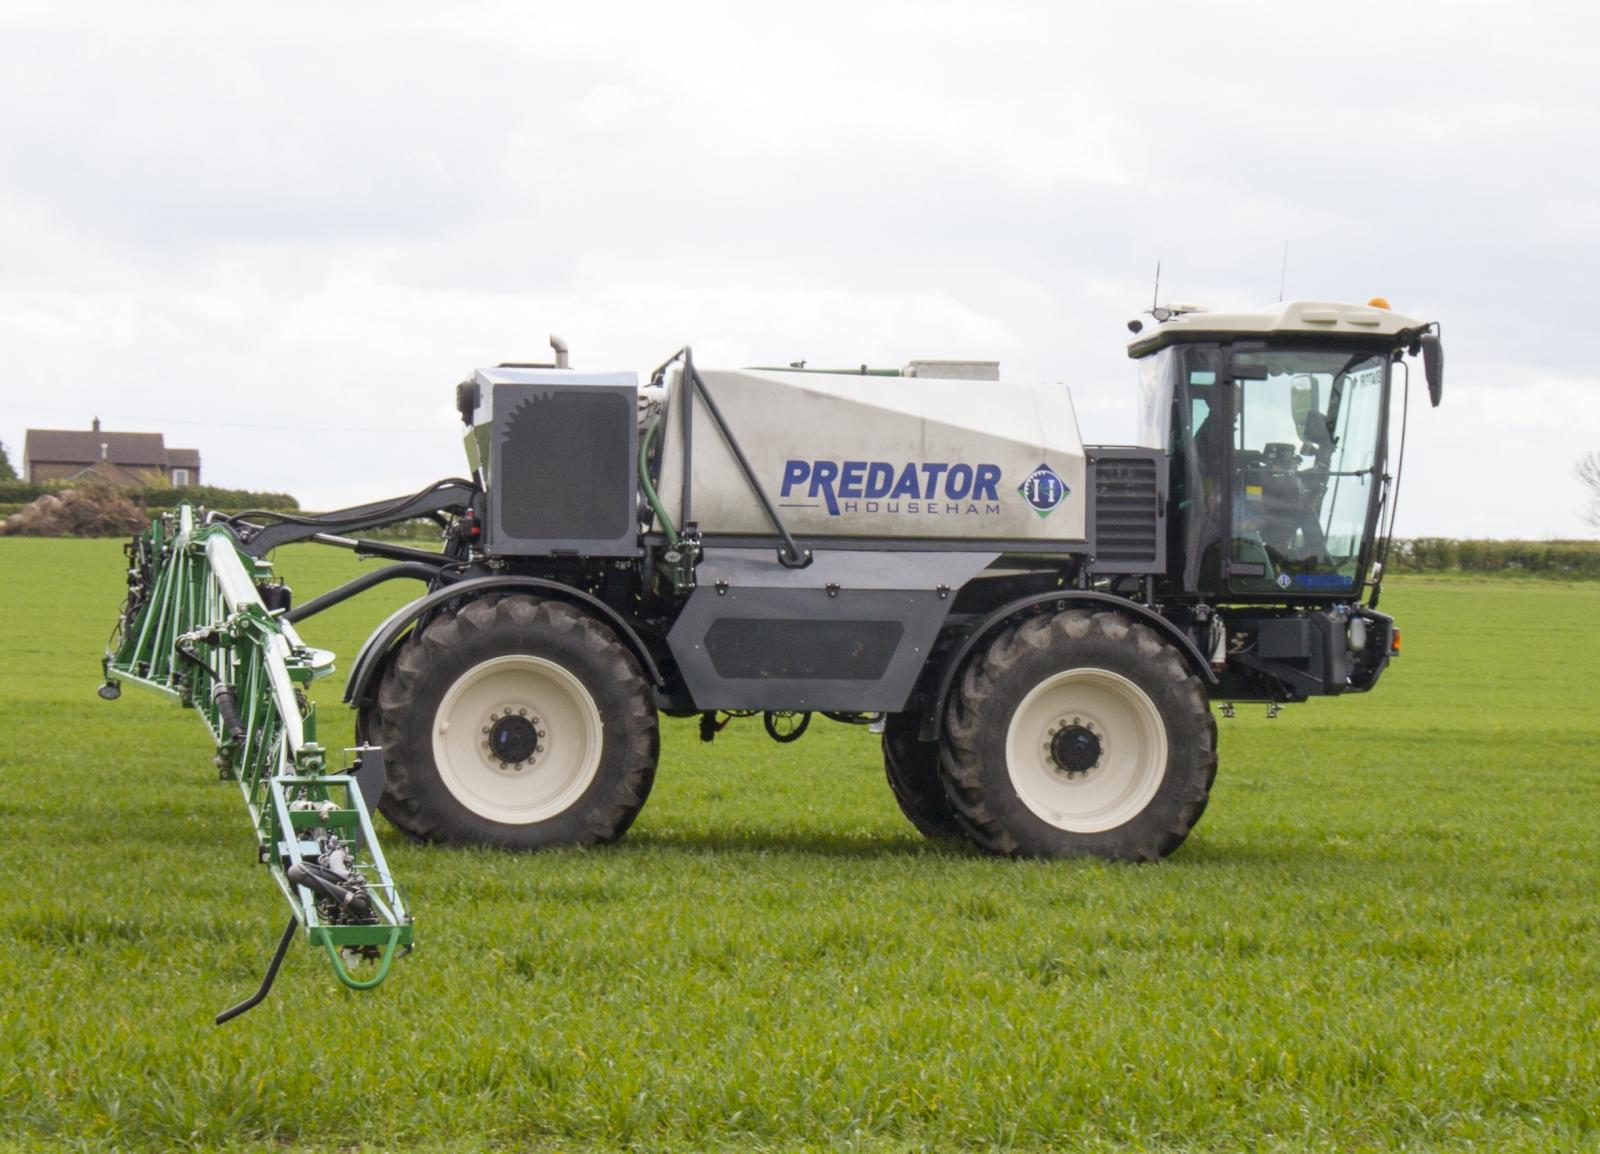 Predator sprayer image